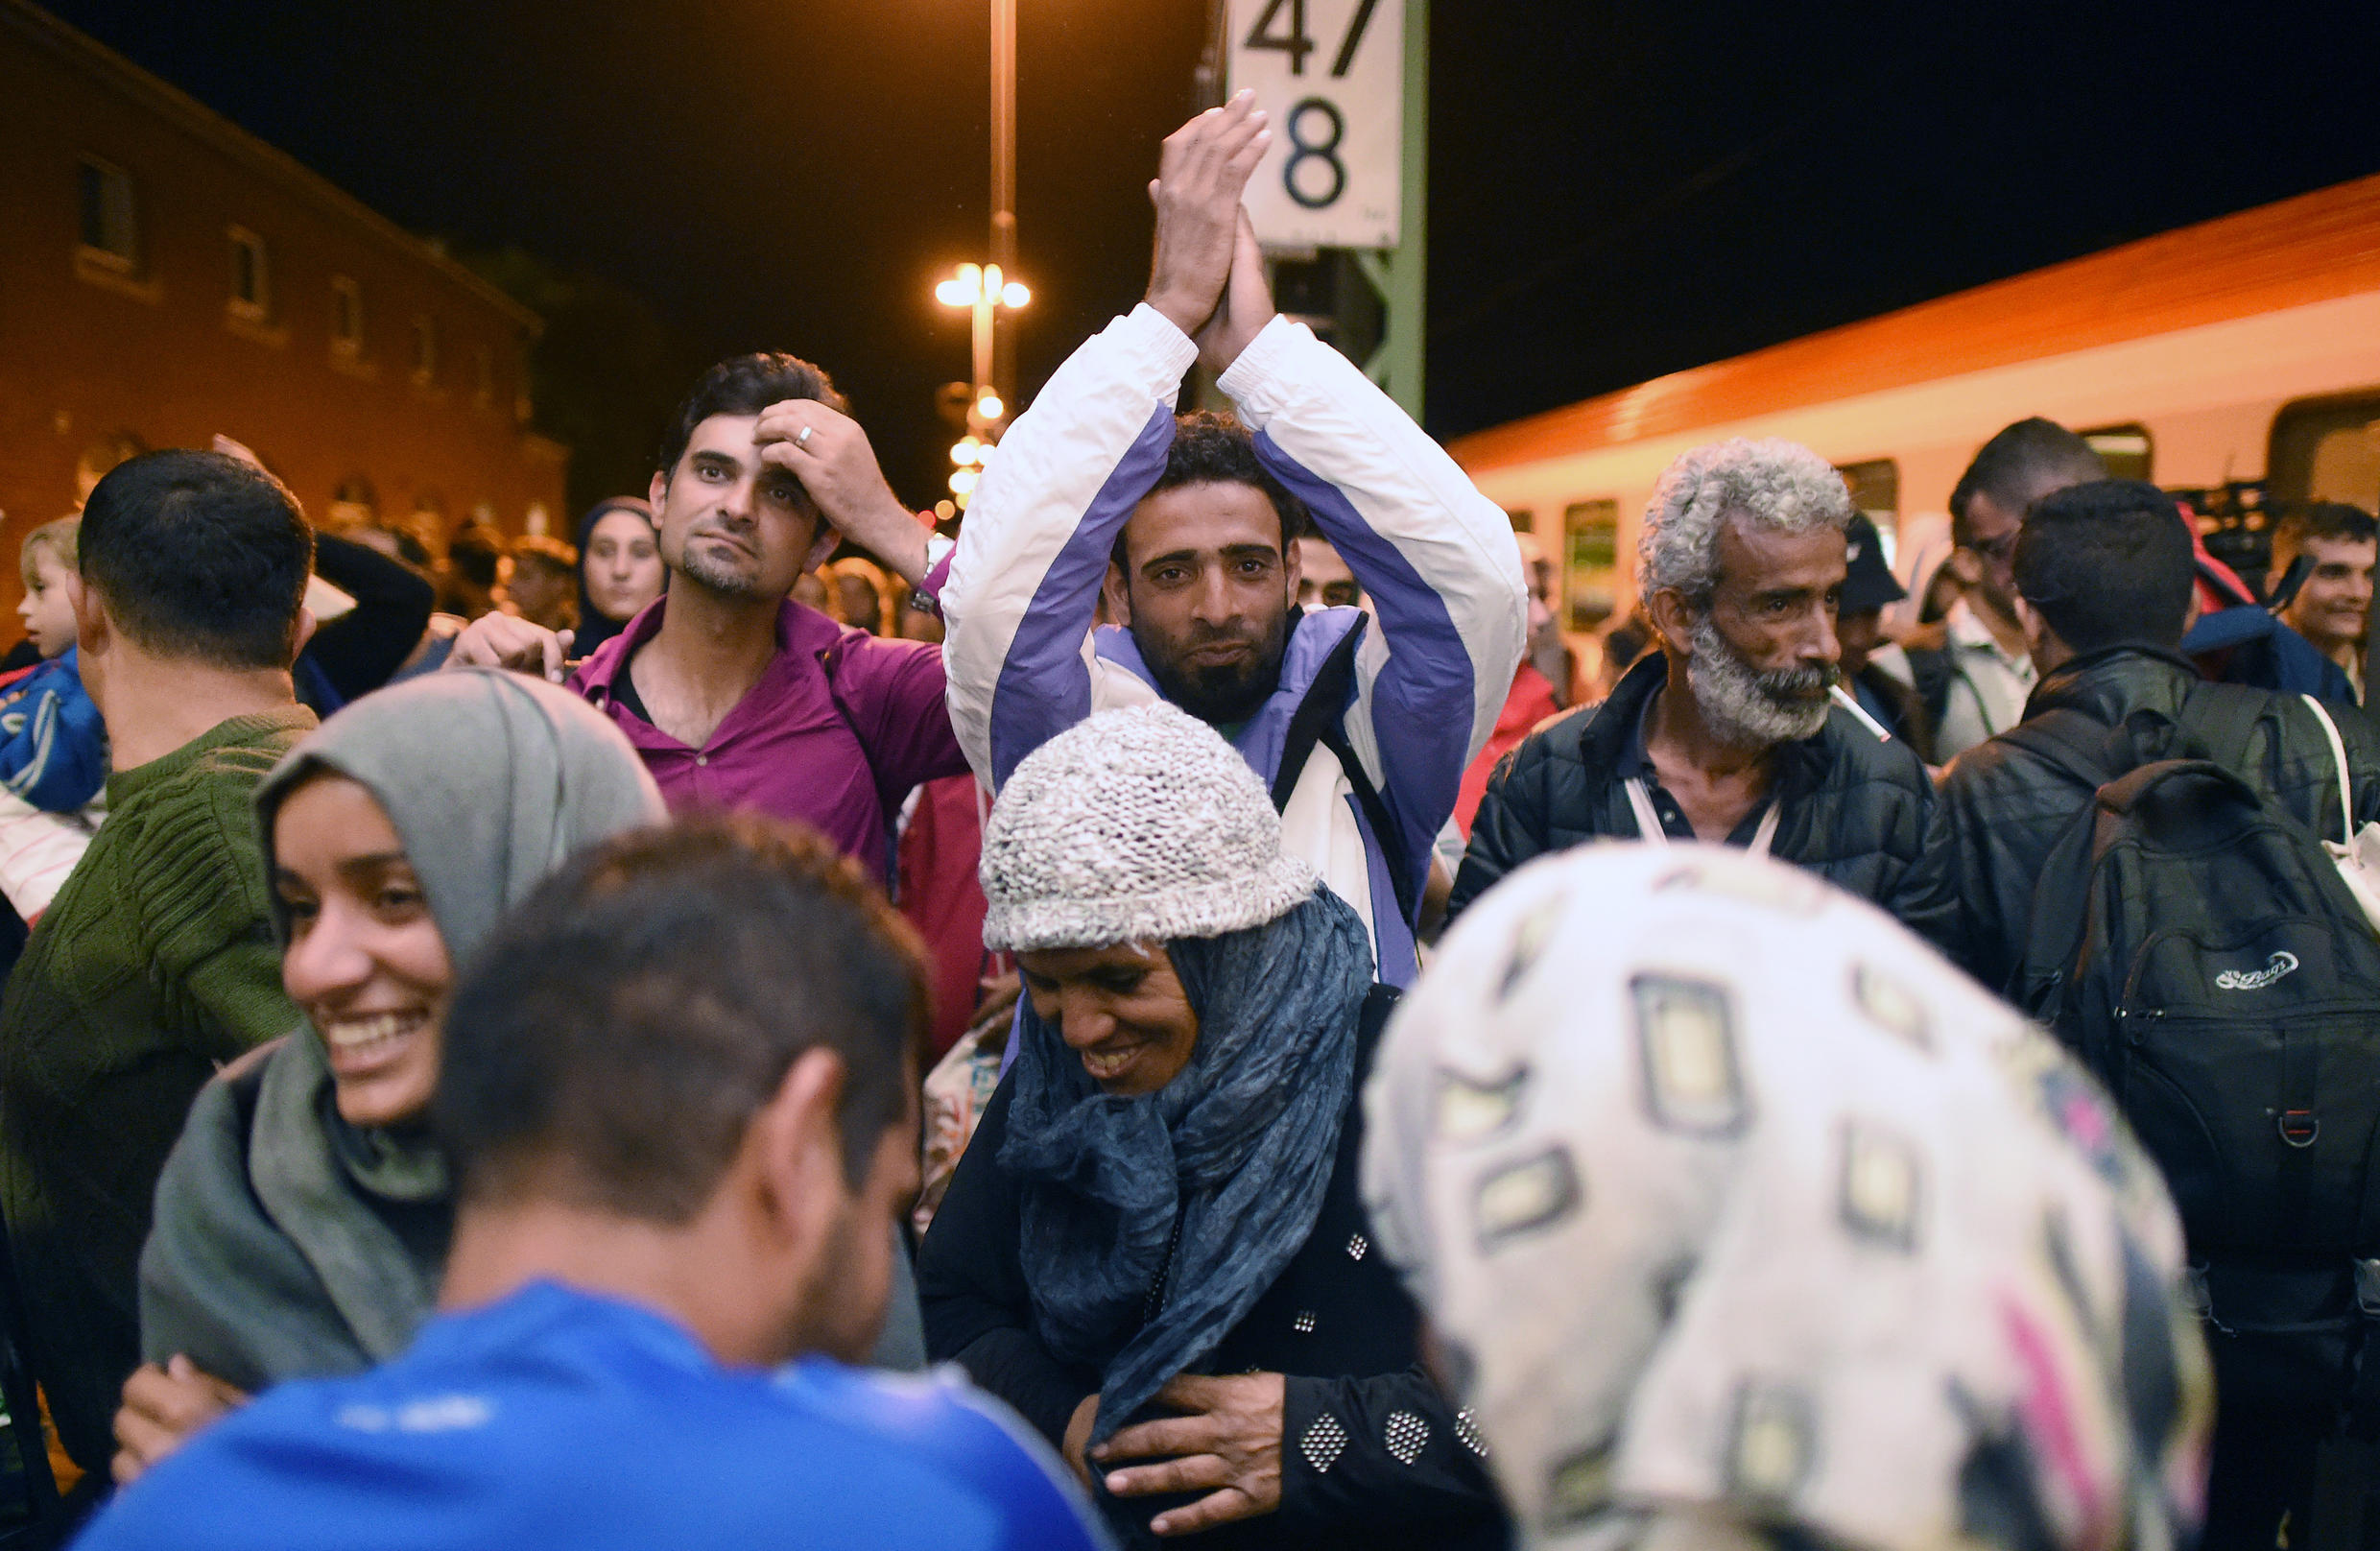 Migrants arrive in Germany from Austria on Monday